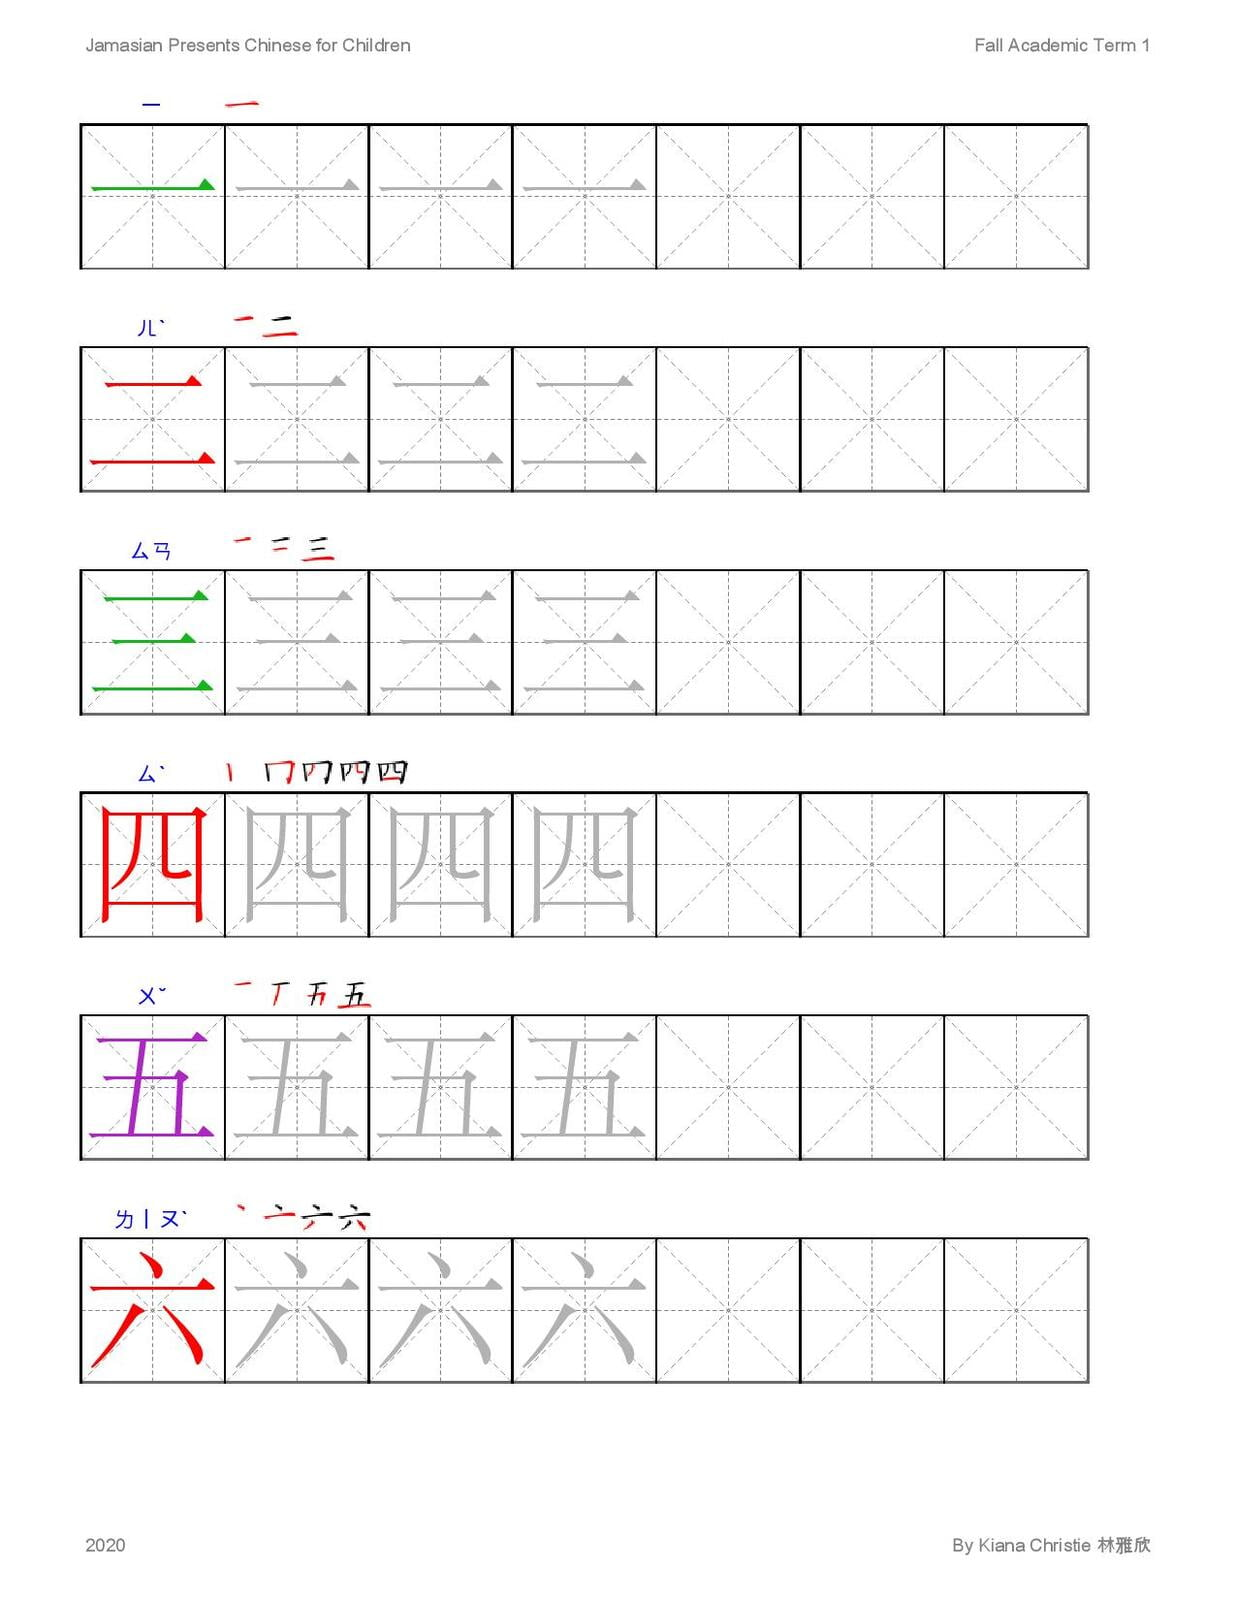 Sample of character worksheets used for Chinese classes at Key Babel.